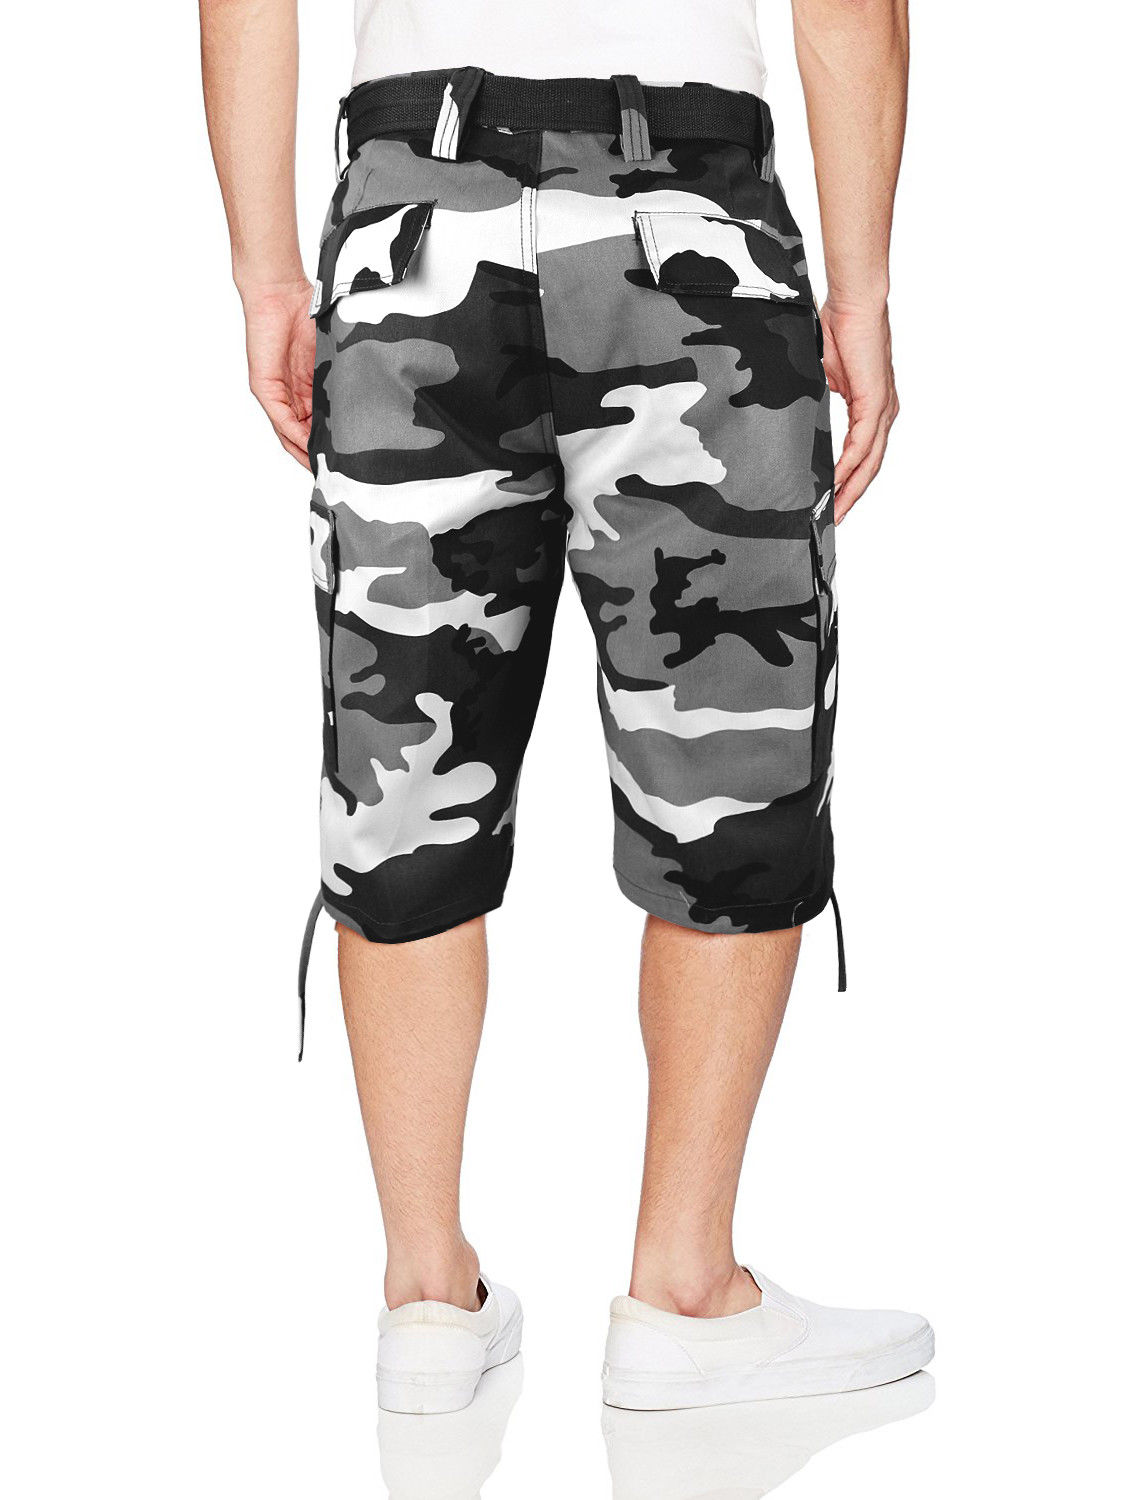 Men-039-s-Tactical-Military-Army-Camo-Camouflage-Slim-Fit-Cargo-Shorts-With-Belt thumbnail 17